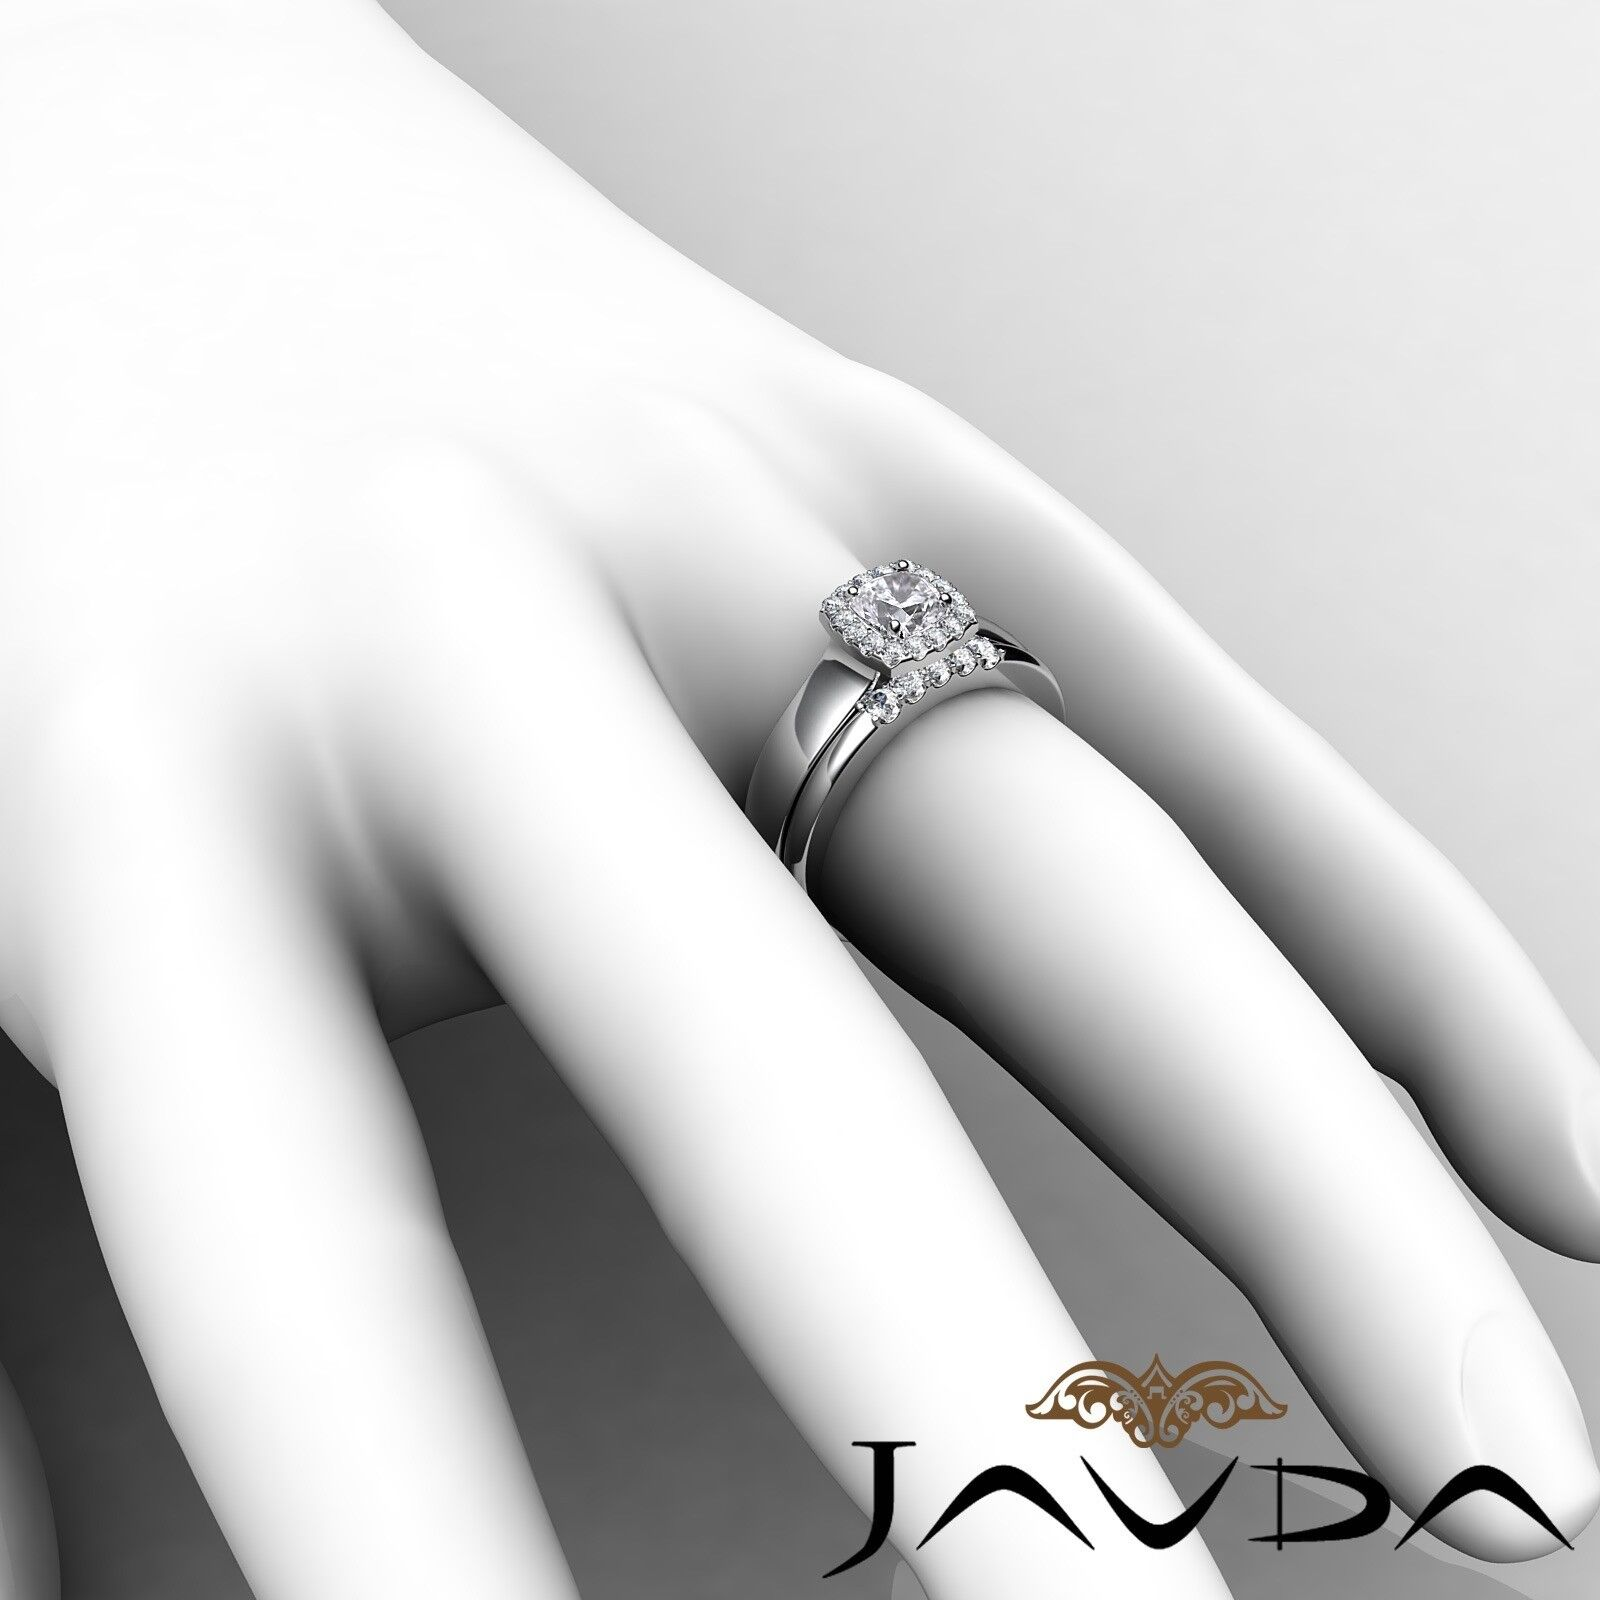 1.04ctw Solitaire Halo Bridal Cushion Diamond Engagement Ring GIA H-VS2 W Gold 6